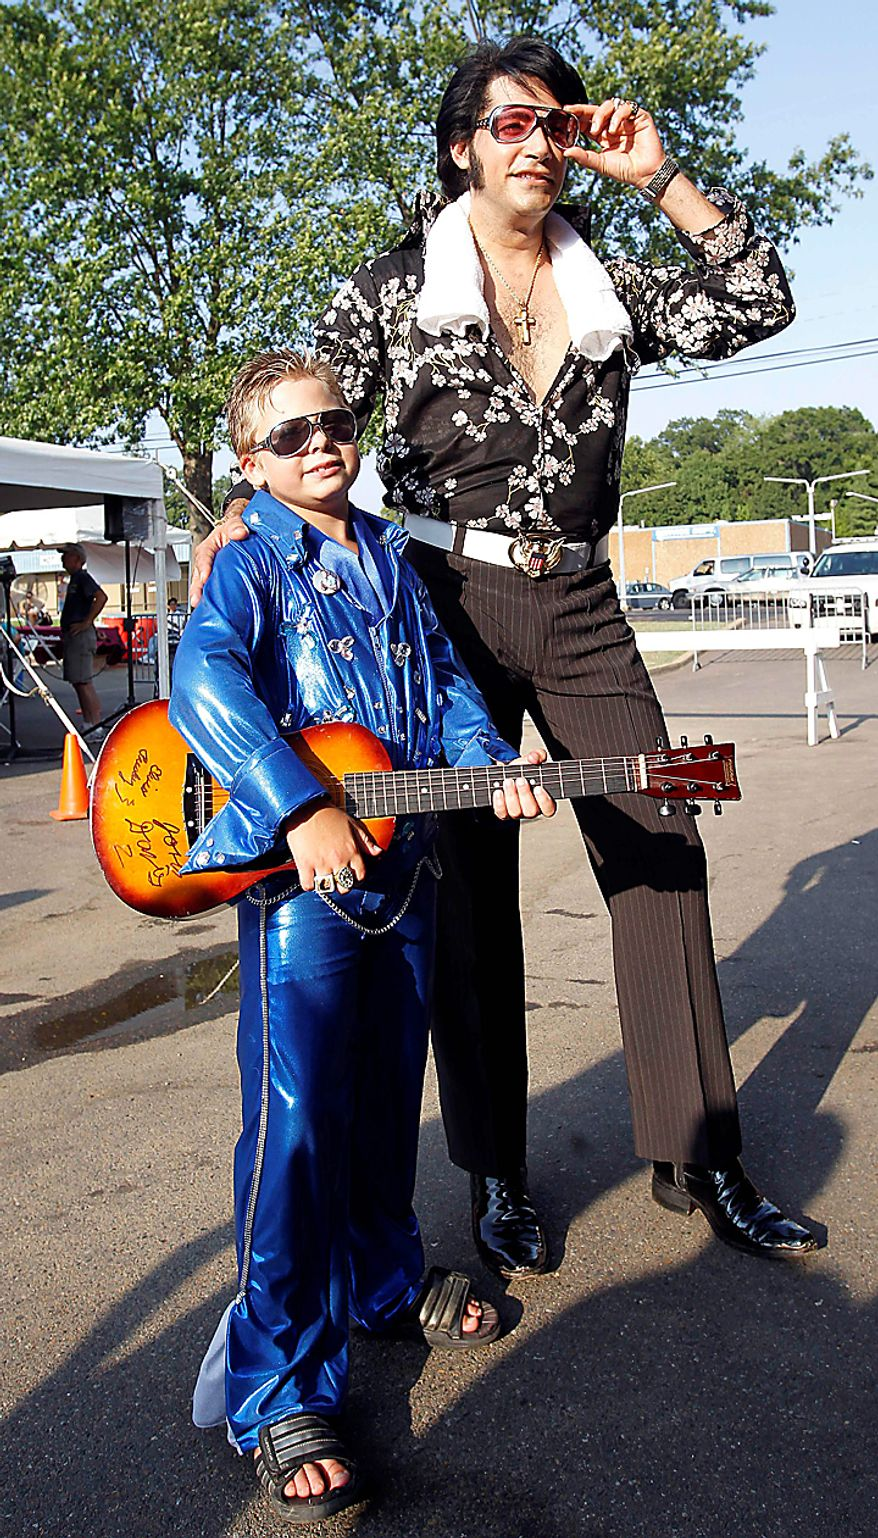 Elvis Presley impersonator Mark Rio, right, of Brazil, poses for a photo with Brandon Bird, 8, of Manhattan, Ill., on Sunday, Aug. 15, 2010 in Memphis, Tenn. Presley fans from around the world are at Graceland, Presley's Memphis home, for the annual nighttime procession past his grave on the eve of his death. Presley died at the home Aug. 16, 1977.  (AP Photo/Mark Humphrey)